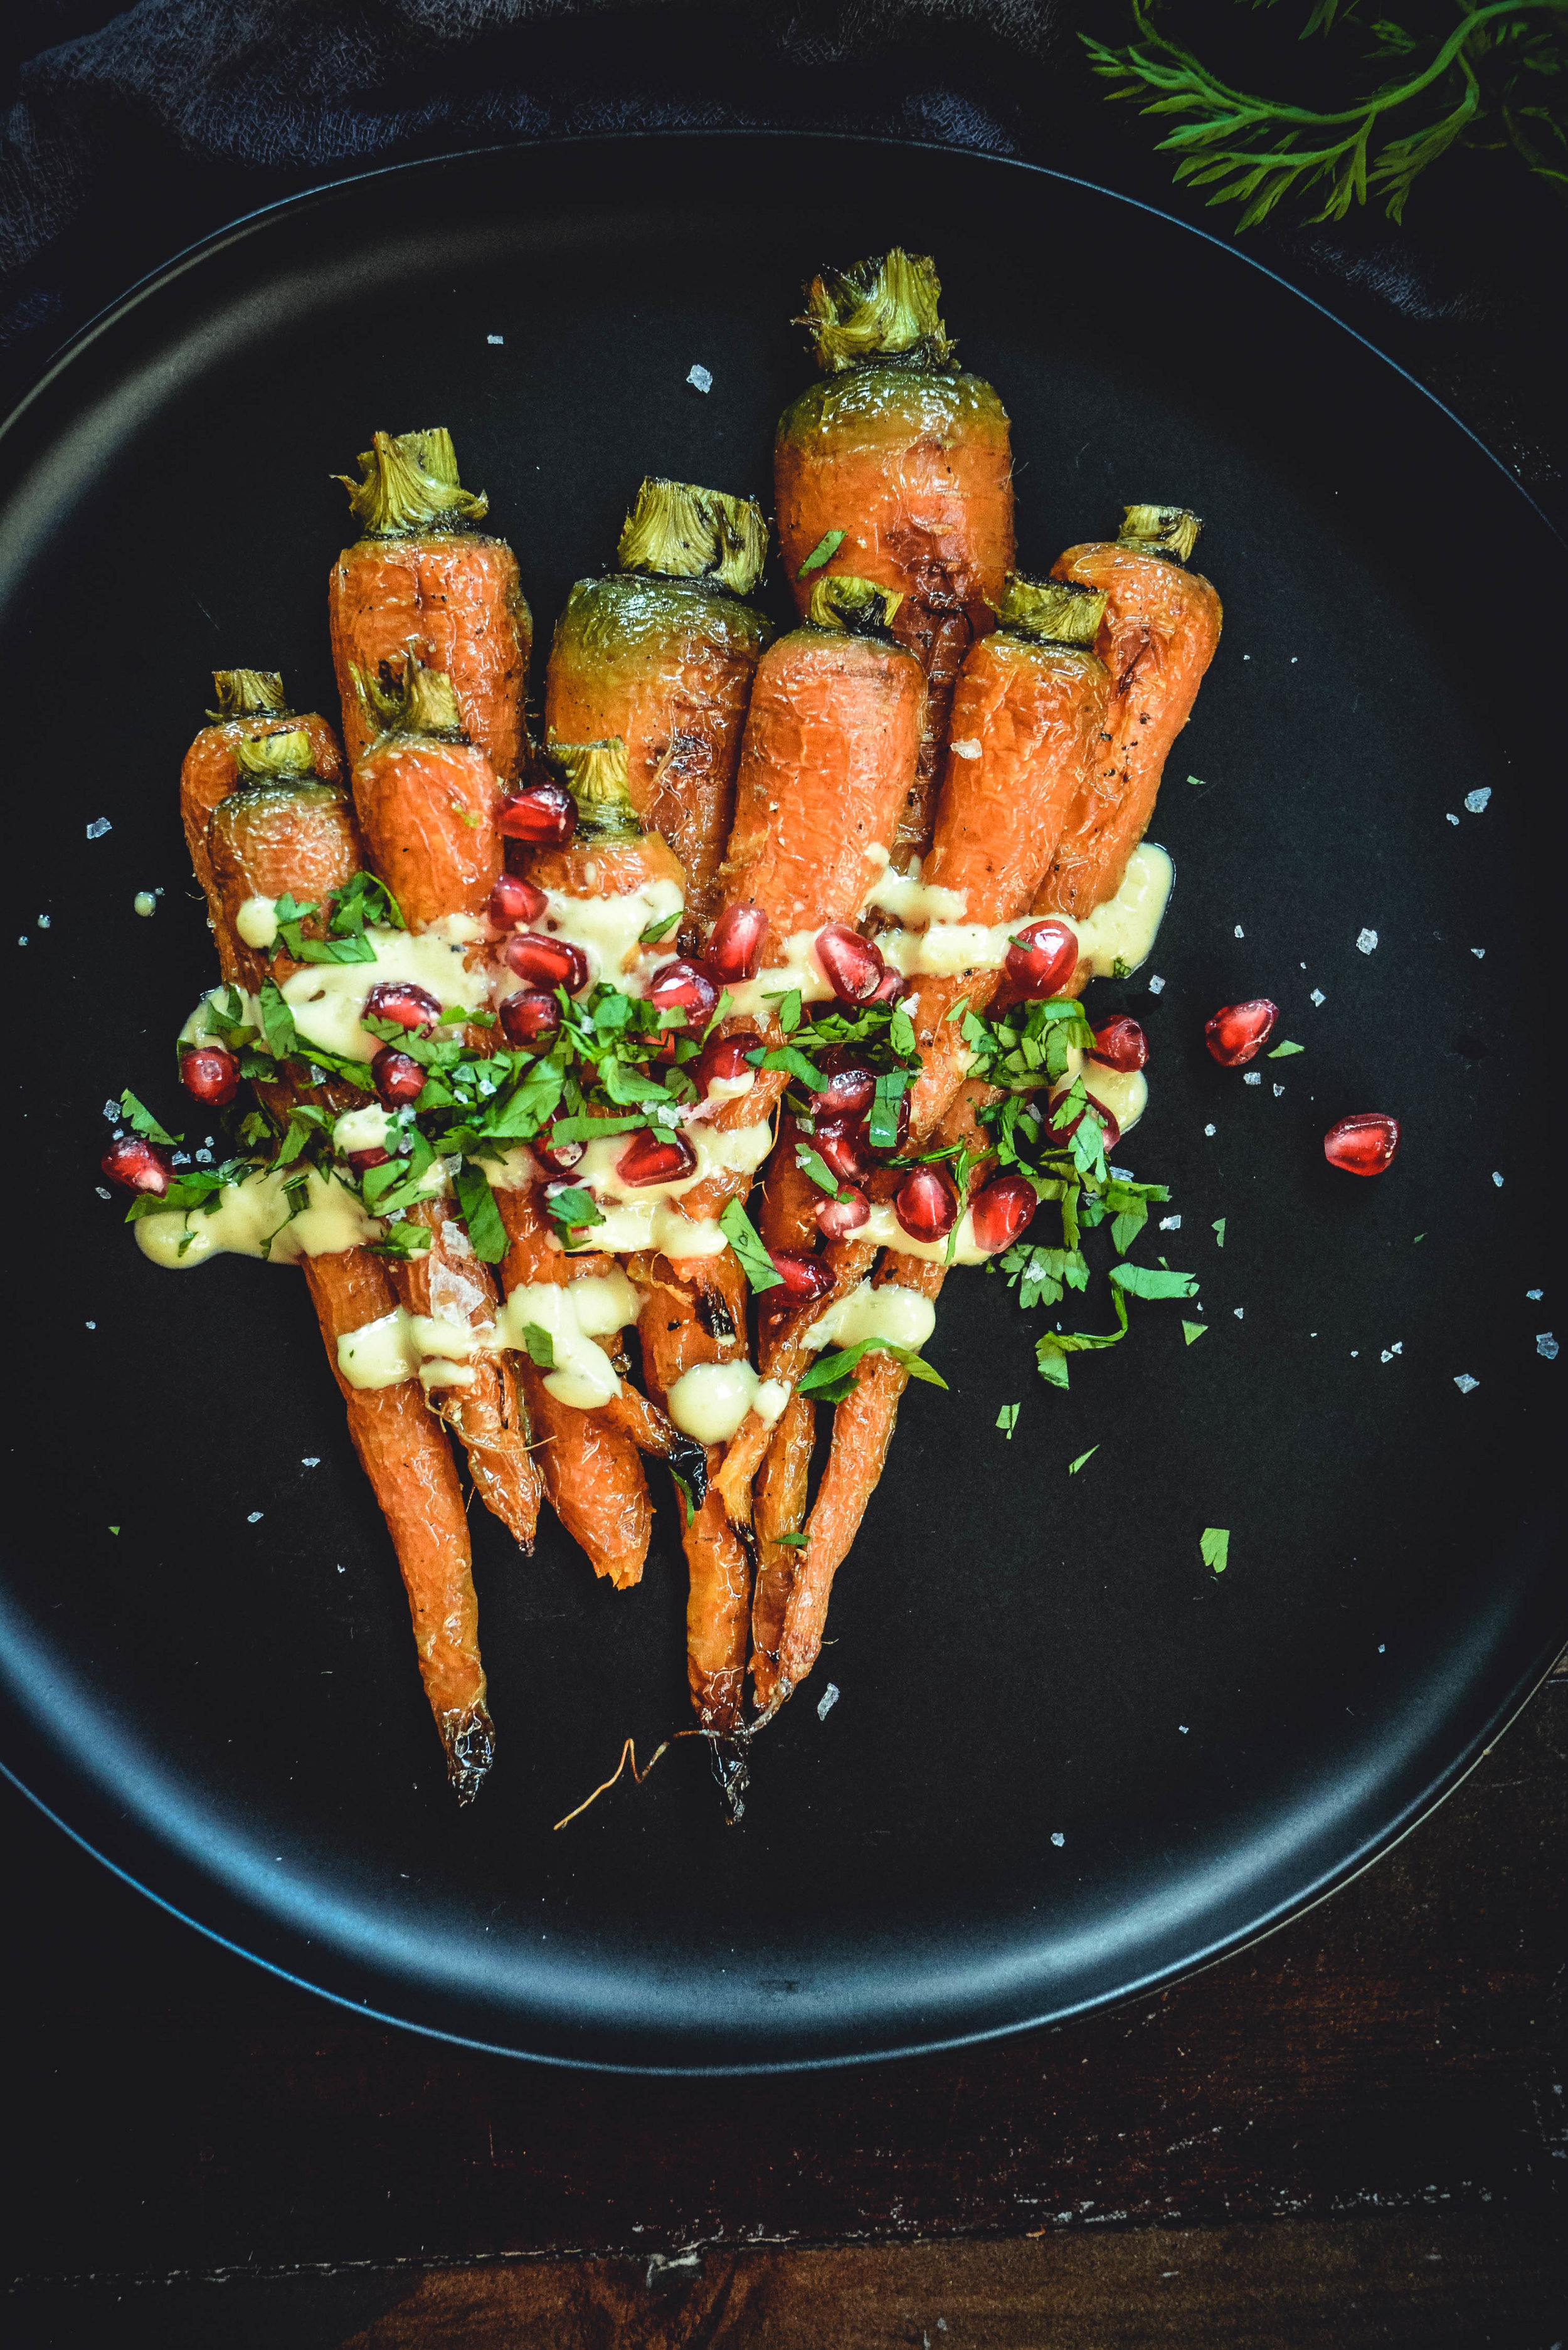 Take roasted carrots to a new level with this flavorful, creamy tahini sauce, topped with finely chopped cilantro and pomegranate seeds. They're a feast for the eyes and the taste buds! Bonus, they're vegan, paleo and whole 30 approved! #calmeats #paleo #whole30 #vegansides #paleosides #vegansides #whole30sides #roastedcarrots #carrots #realfood #glutenfreesides #dairyfreesides #tahini #pomegranate